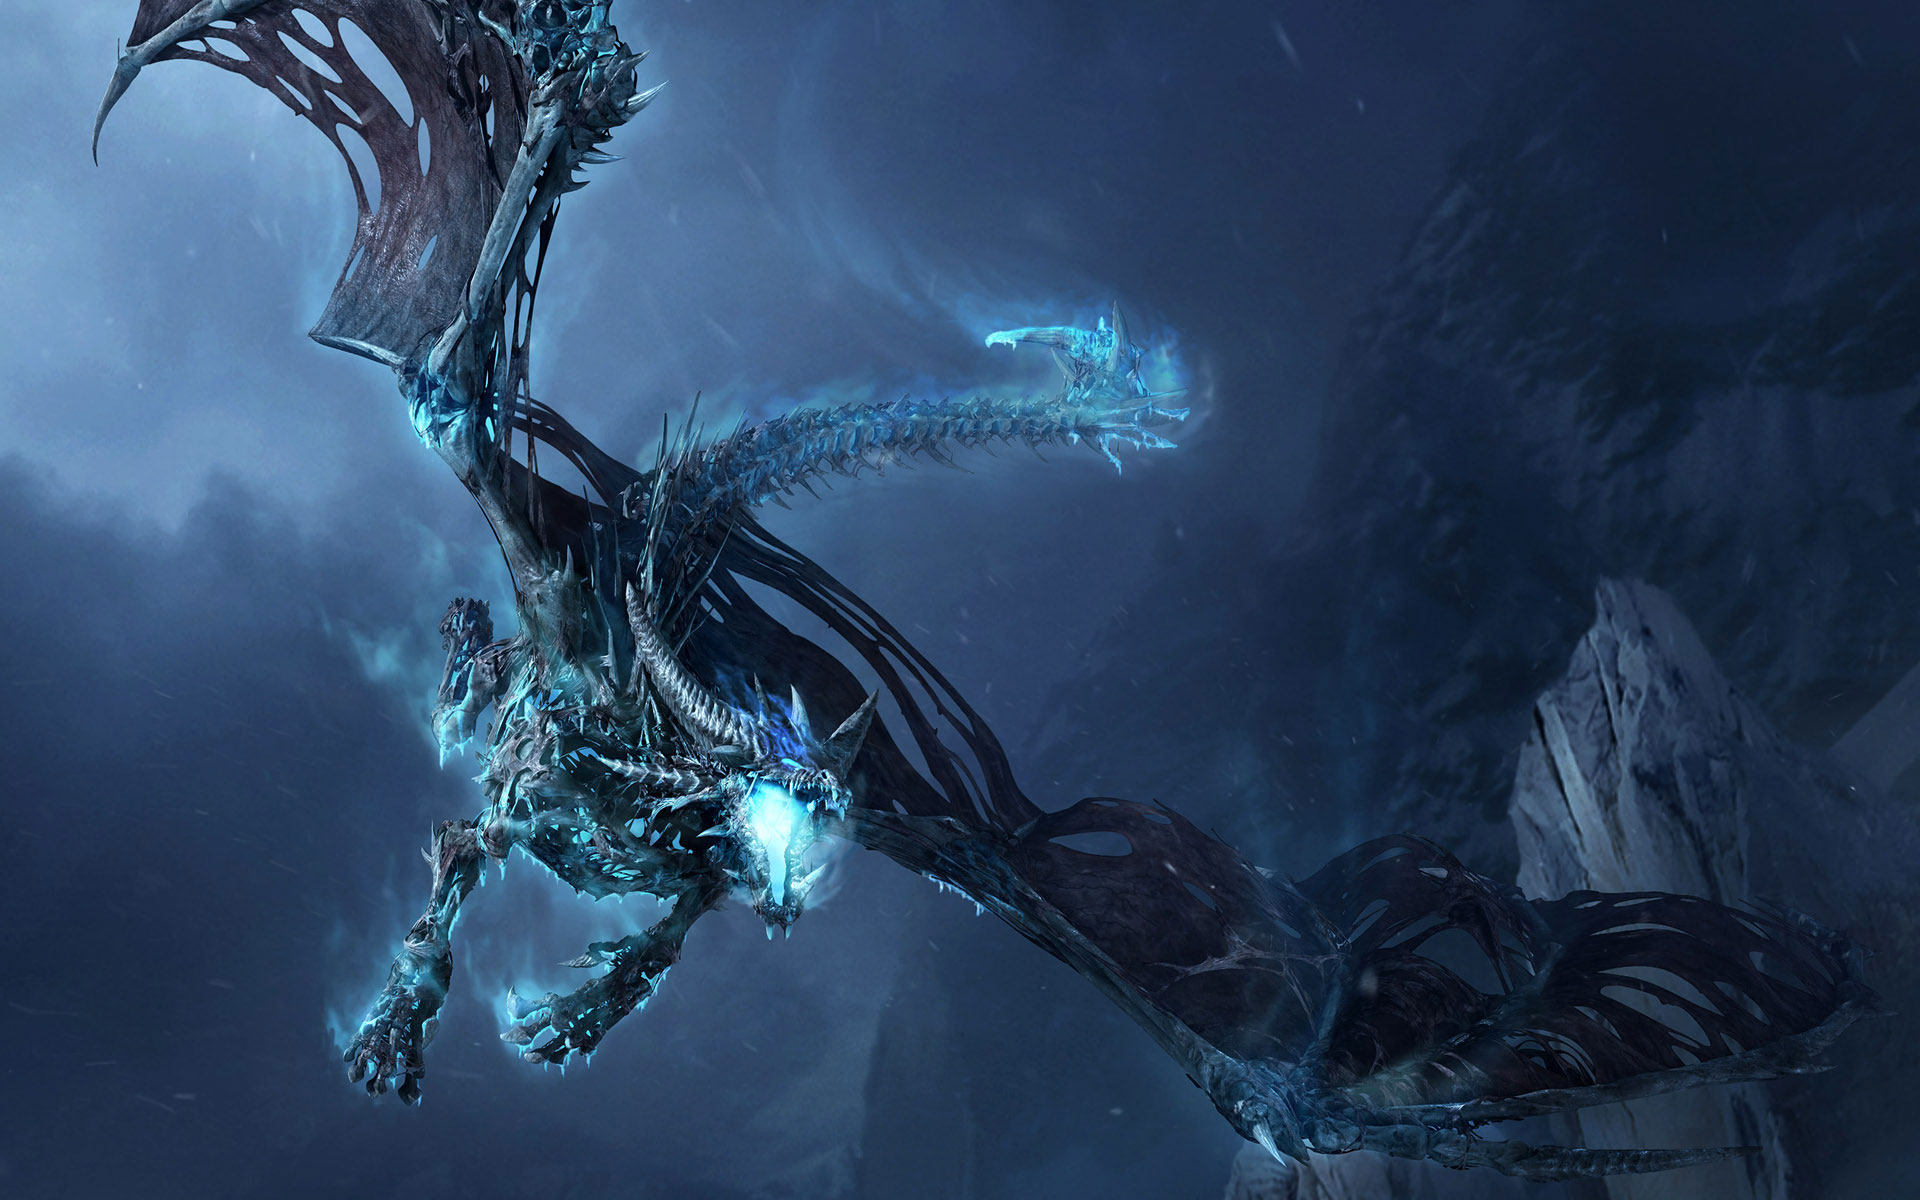 Dragon Frost Dragon Widescreen Wallpaper 1920x1200